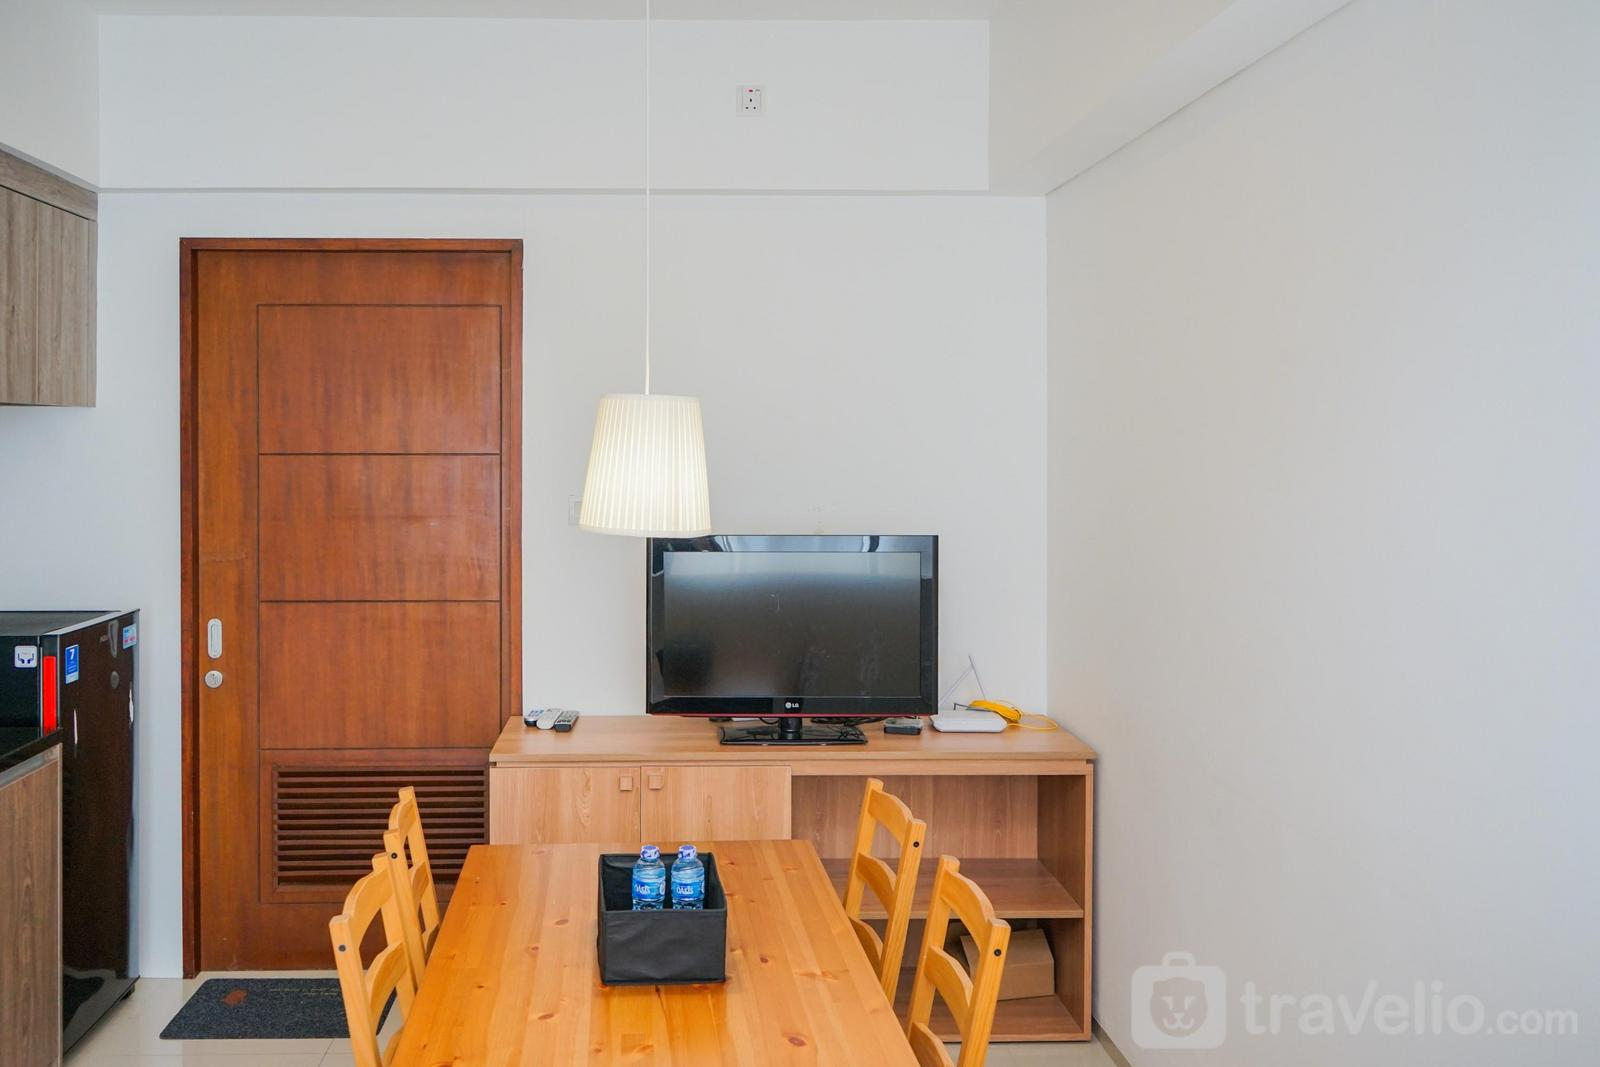 Apartemen The Accent - Modern and Comfy Studio Apartment The Accent Bintaro By Travelio